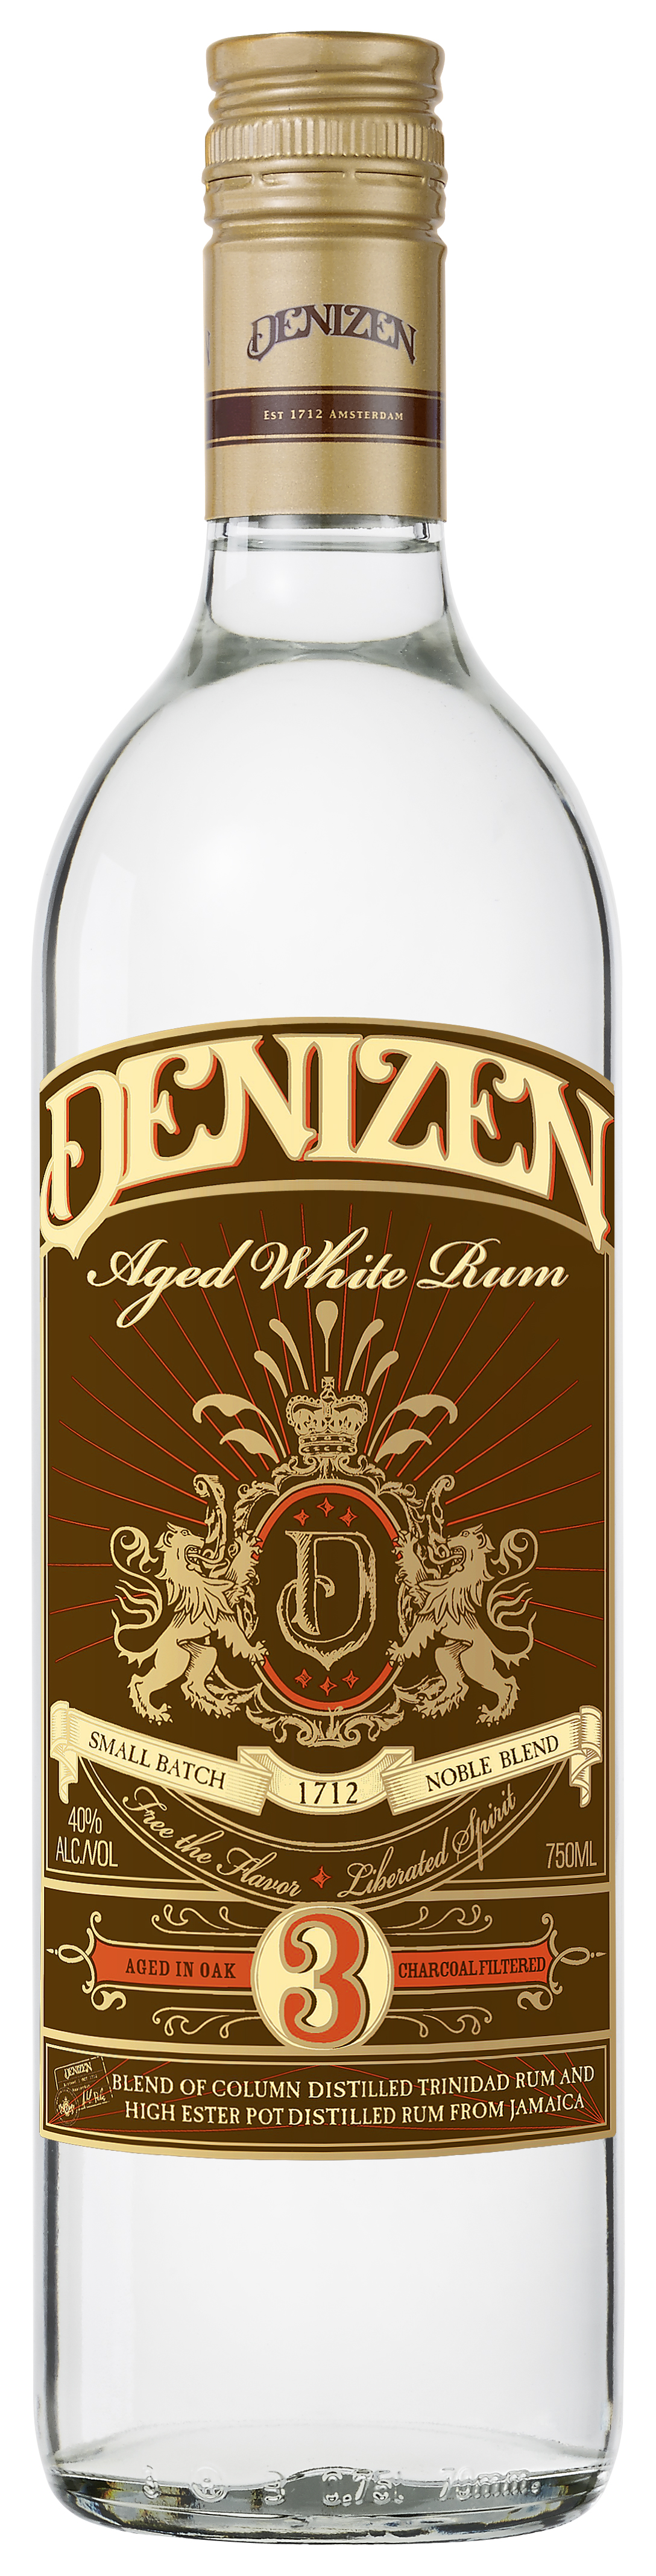 new-denizen-aged-white-bottle-shot-2016